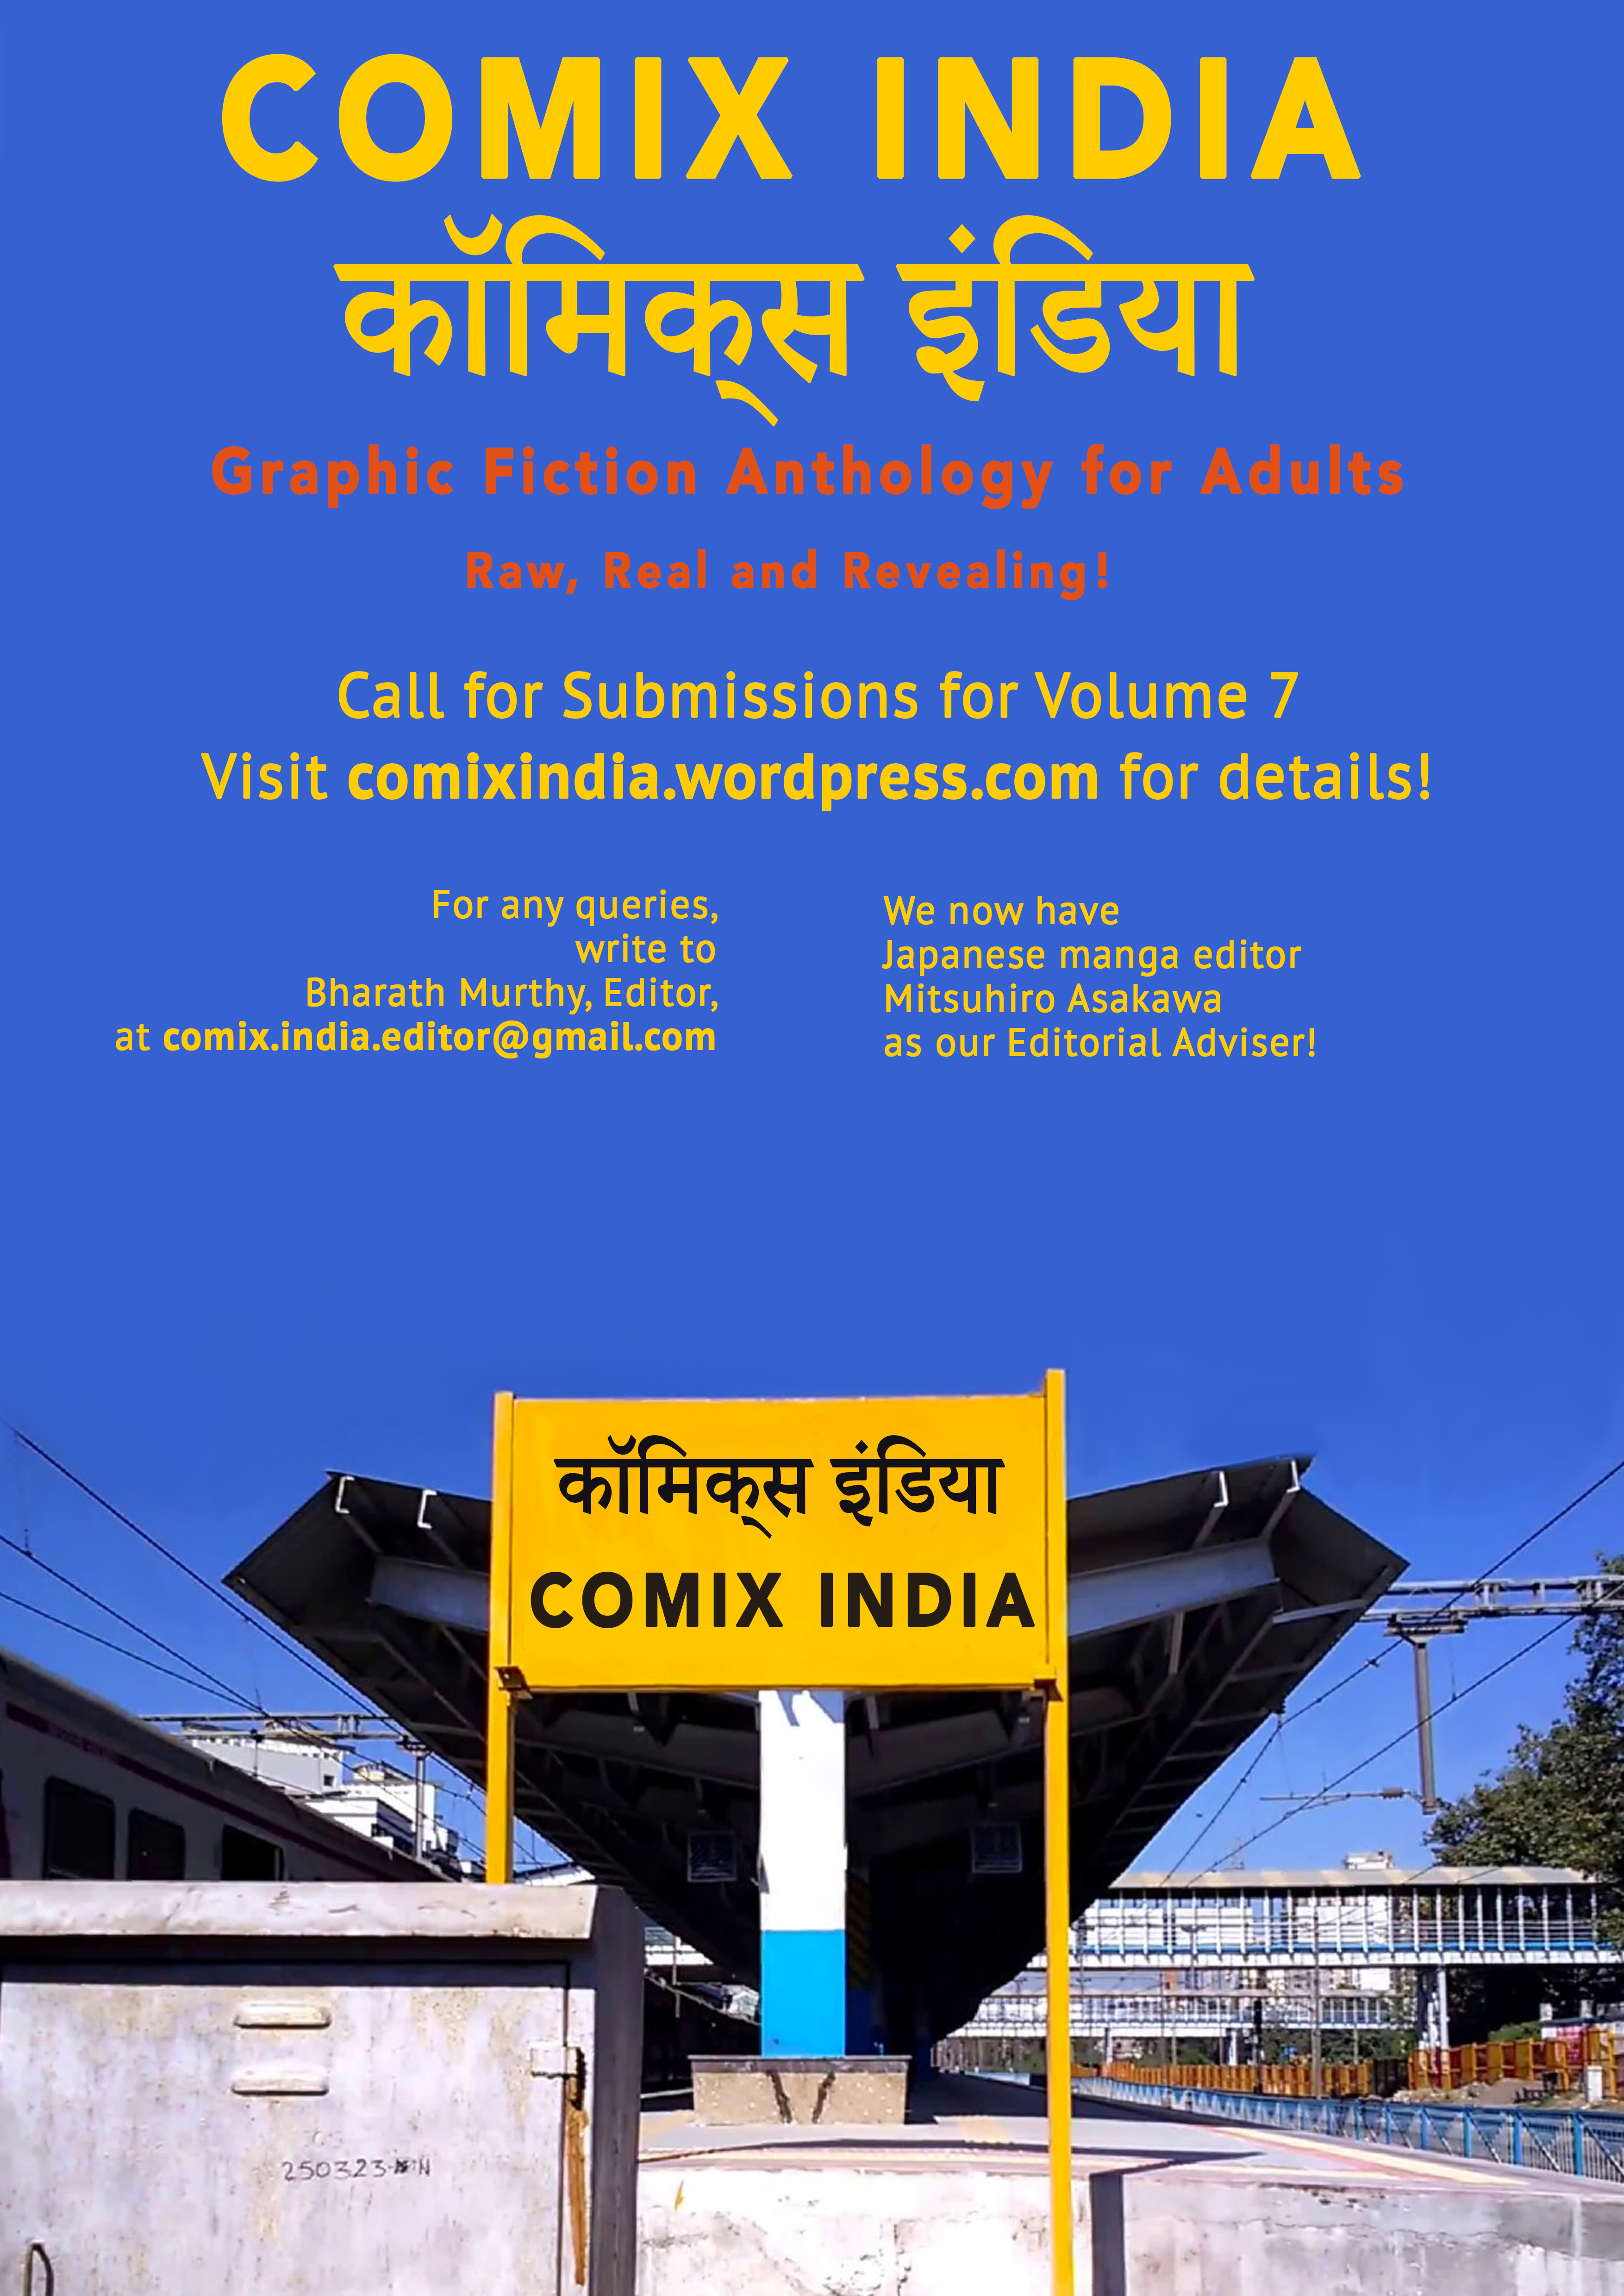 comix india vol 7 - call for submissions